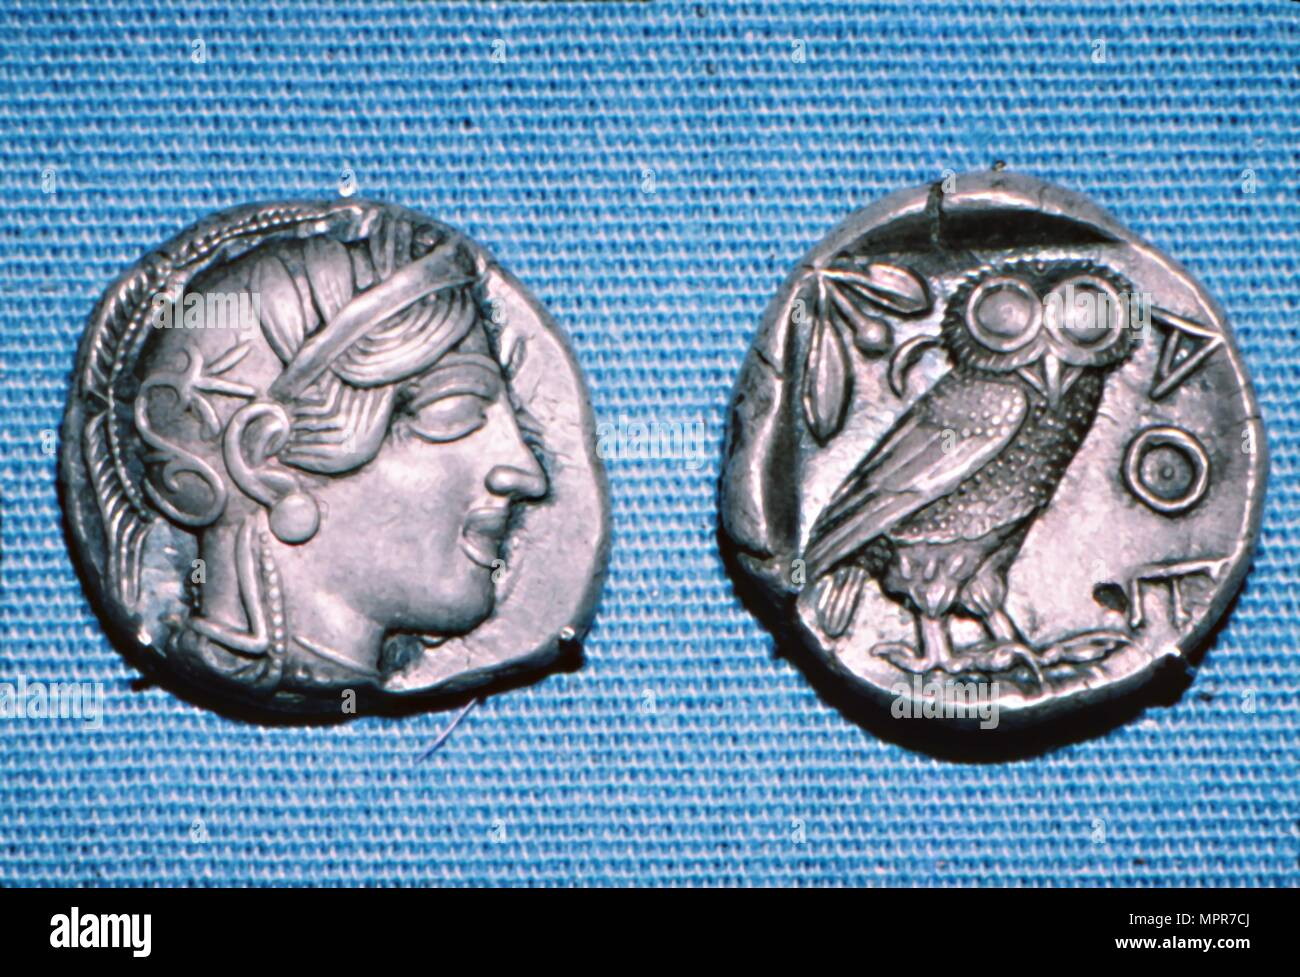 Tetradrachm, Greek Coin, Silver Head of Athena and Owl, mid to late 5th century BC. Artist: Unknown. - Stock Image